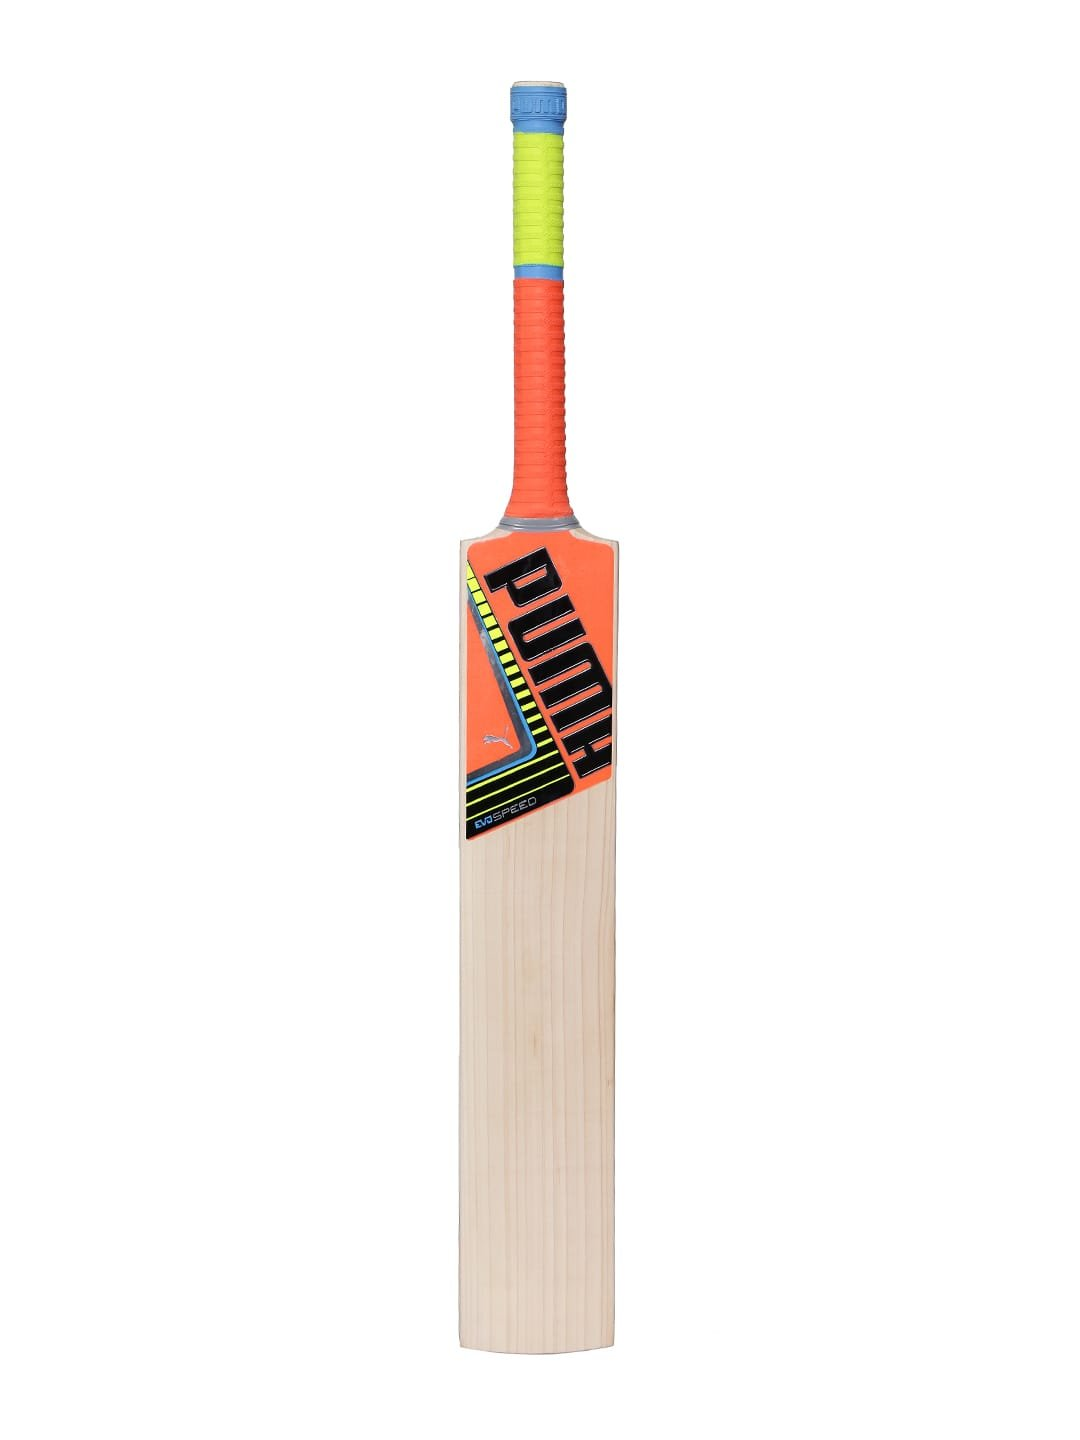 Buy Puma Evospeed 1 16 89673901 Wood Cricket Bat 77141a1dbe